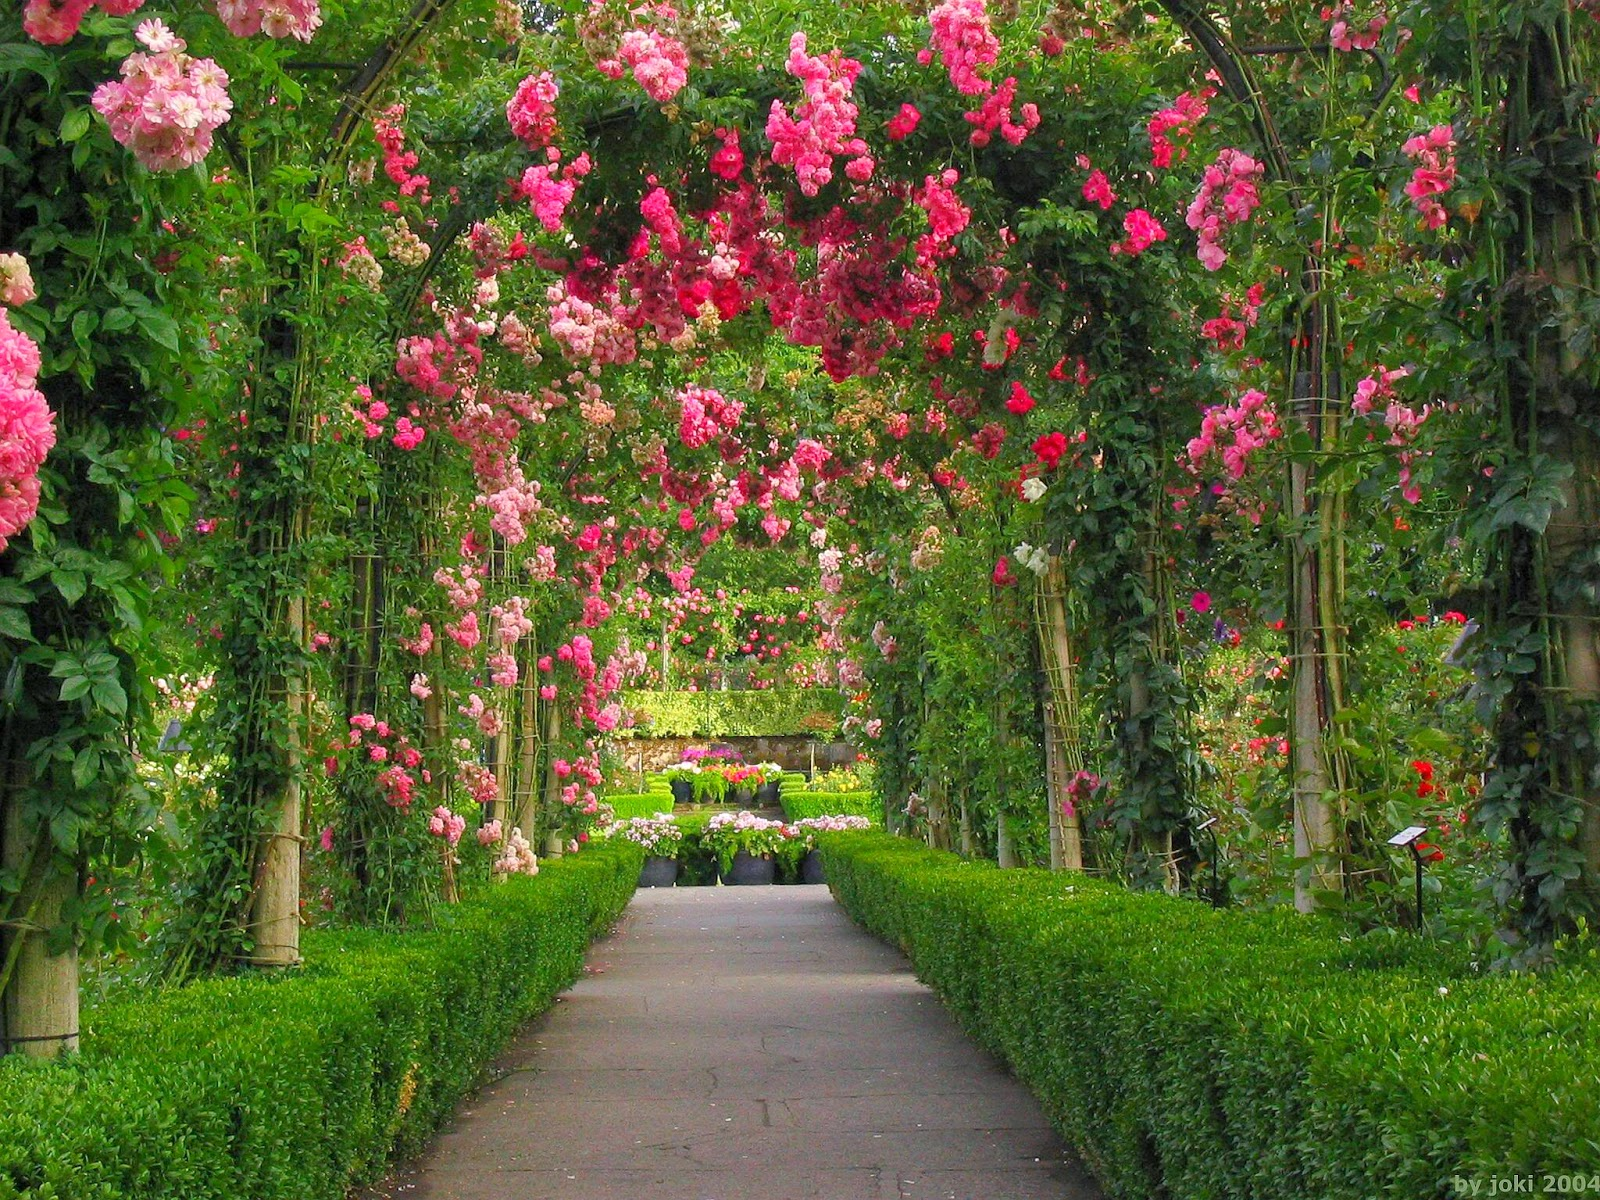 red rose flower garden wallpaper|http://refreshrose.blogspot/